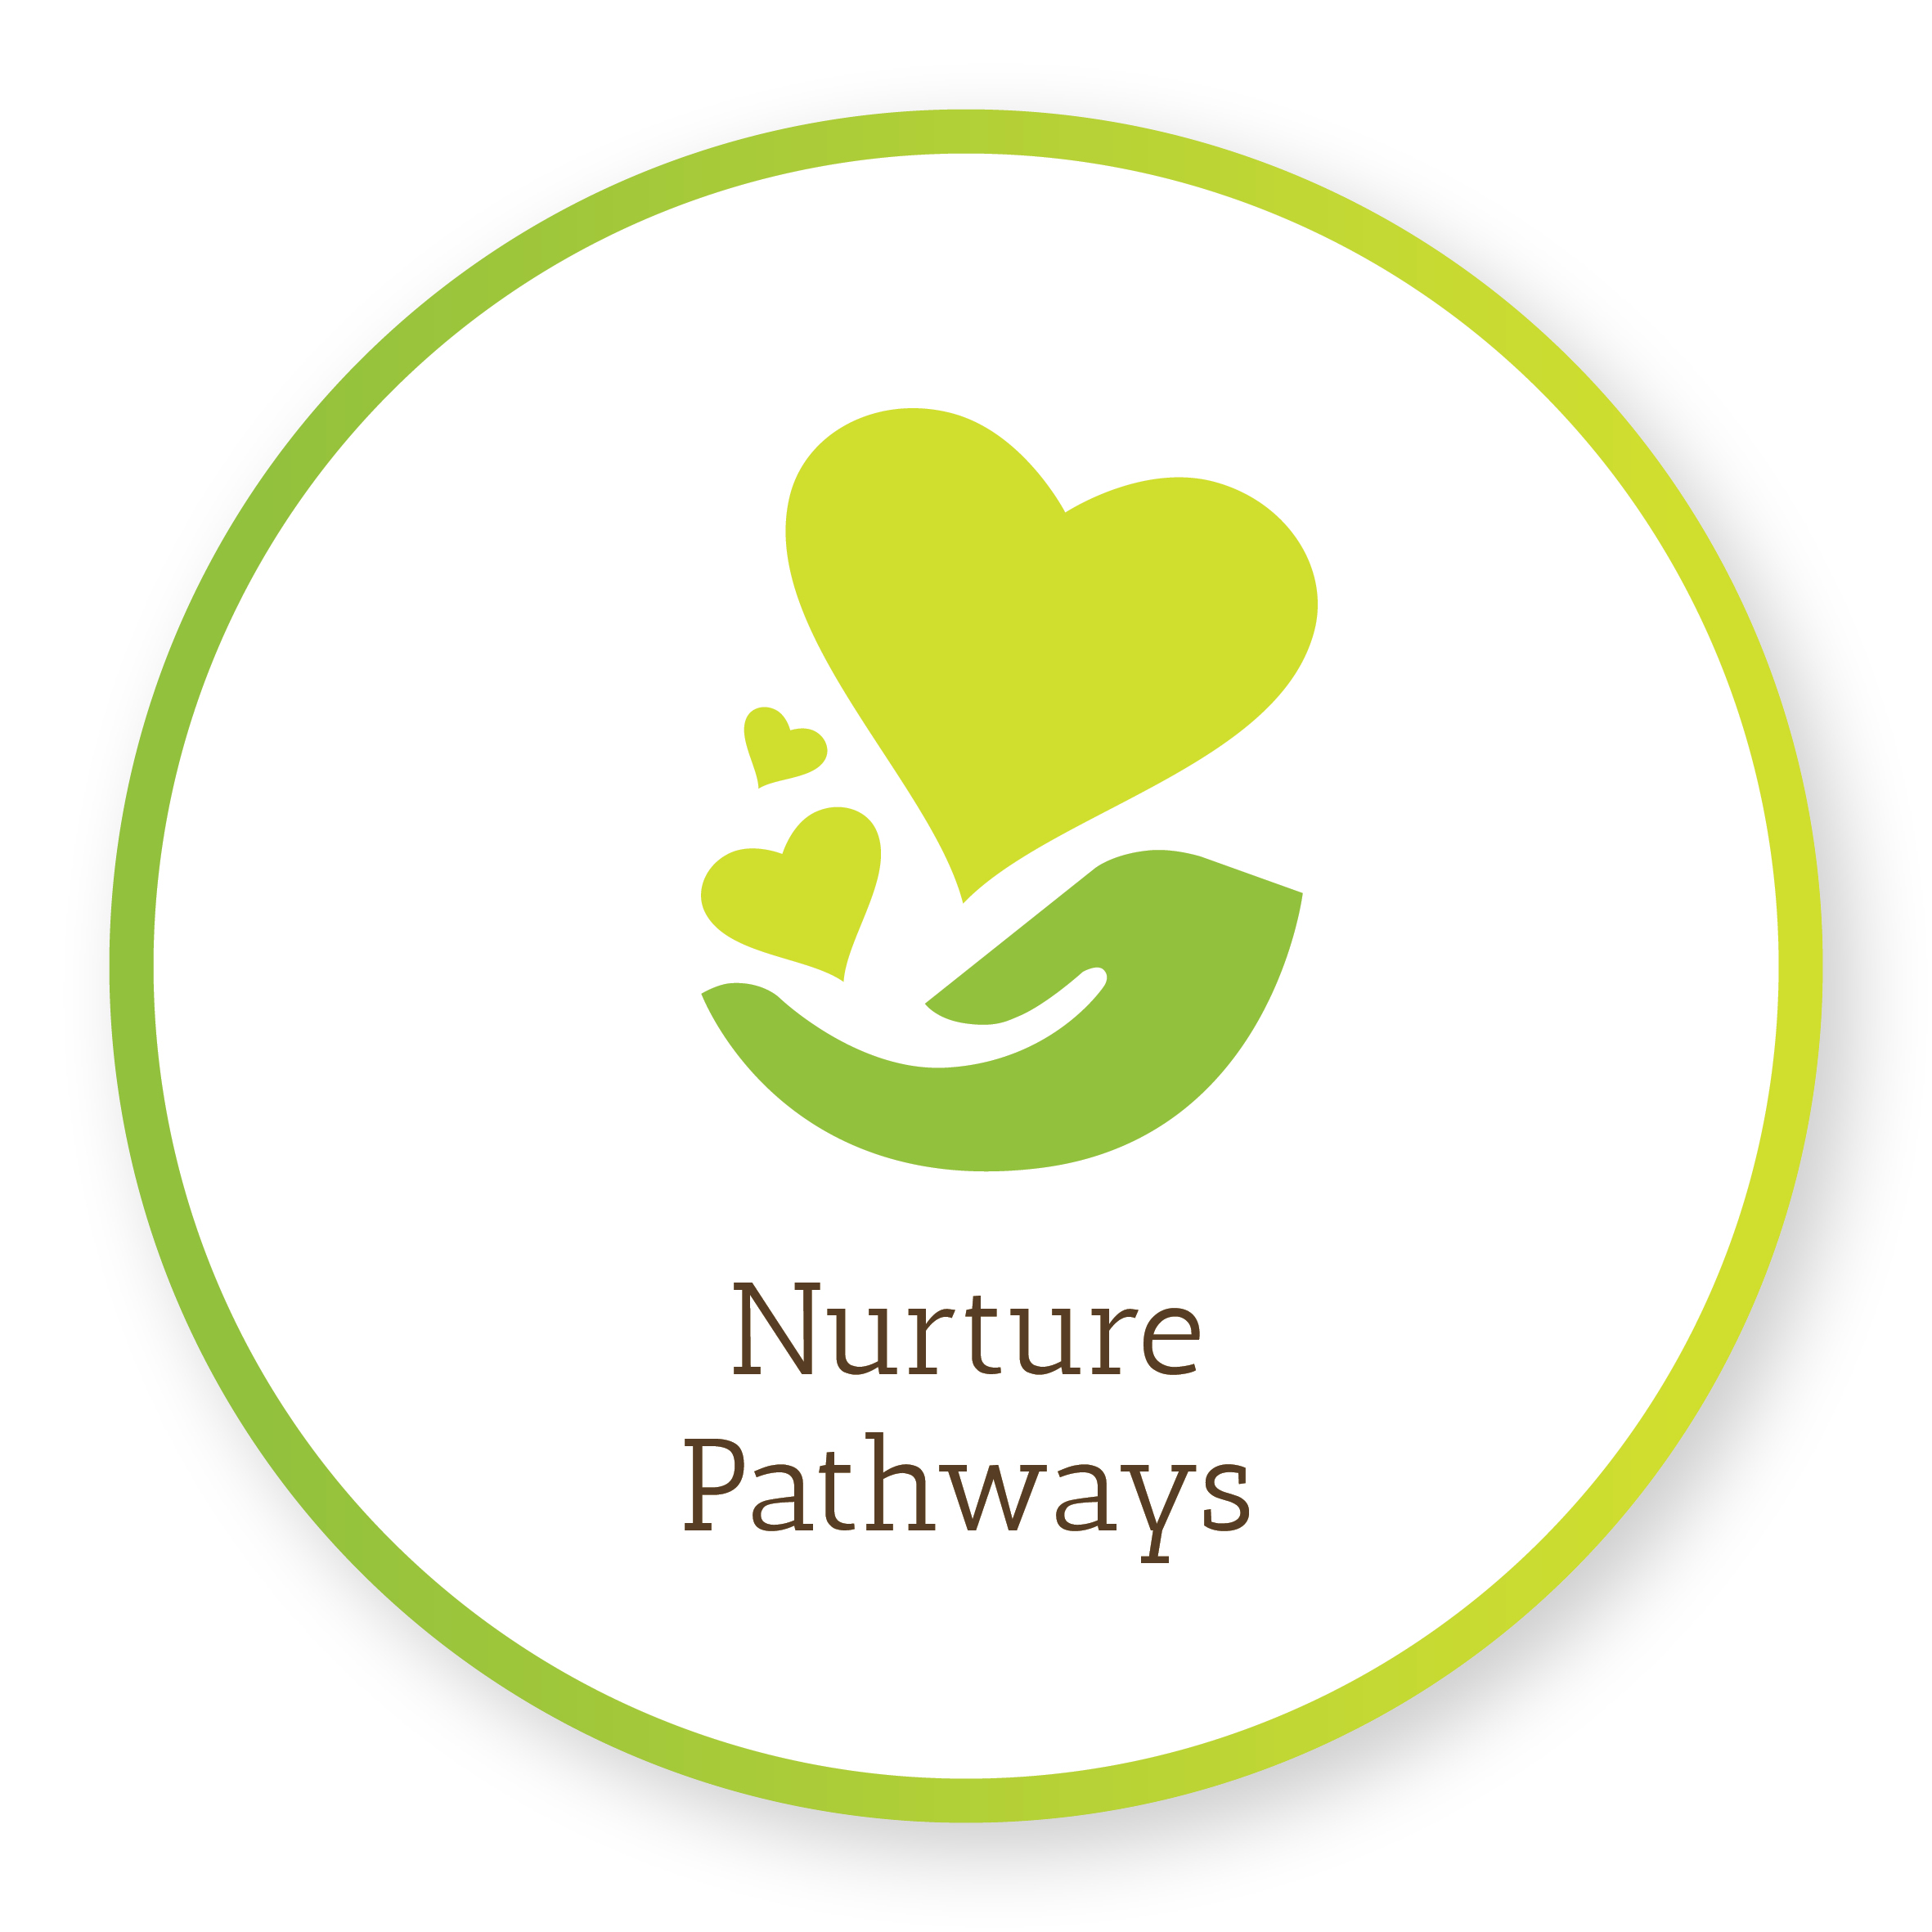 Nurture Pathways